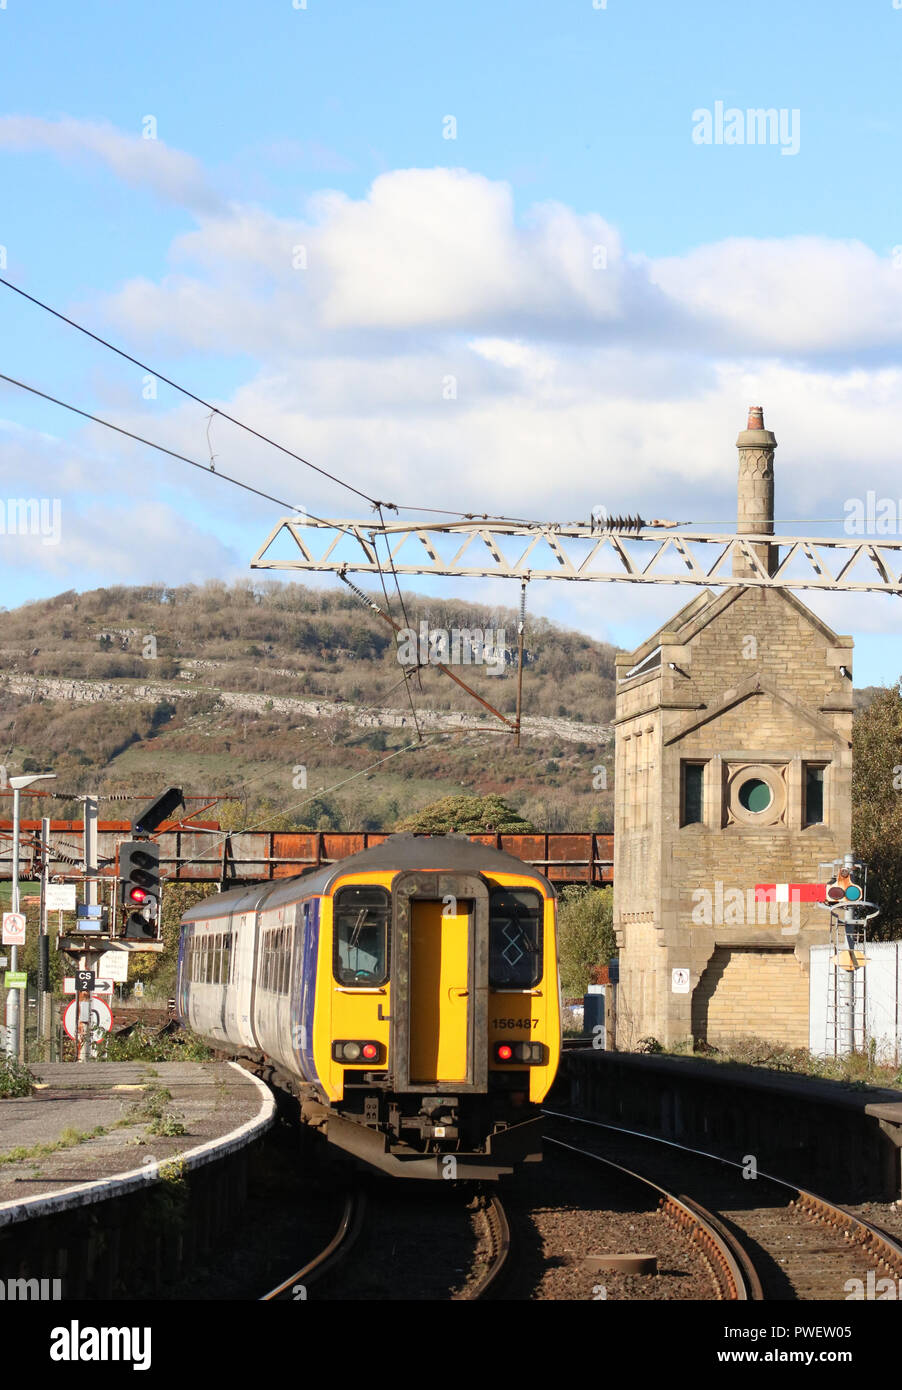 Class 156 Super Sprinter dmu in Northern livery leaving platform 2 at Carnforth station with a passenger service to Sellafield on 15th October 2018. - Stock Image